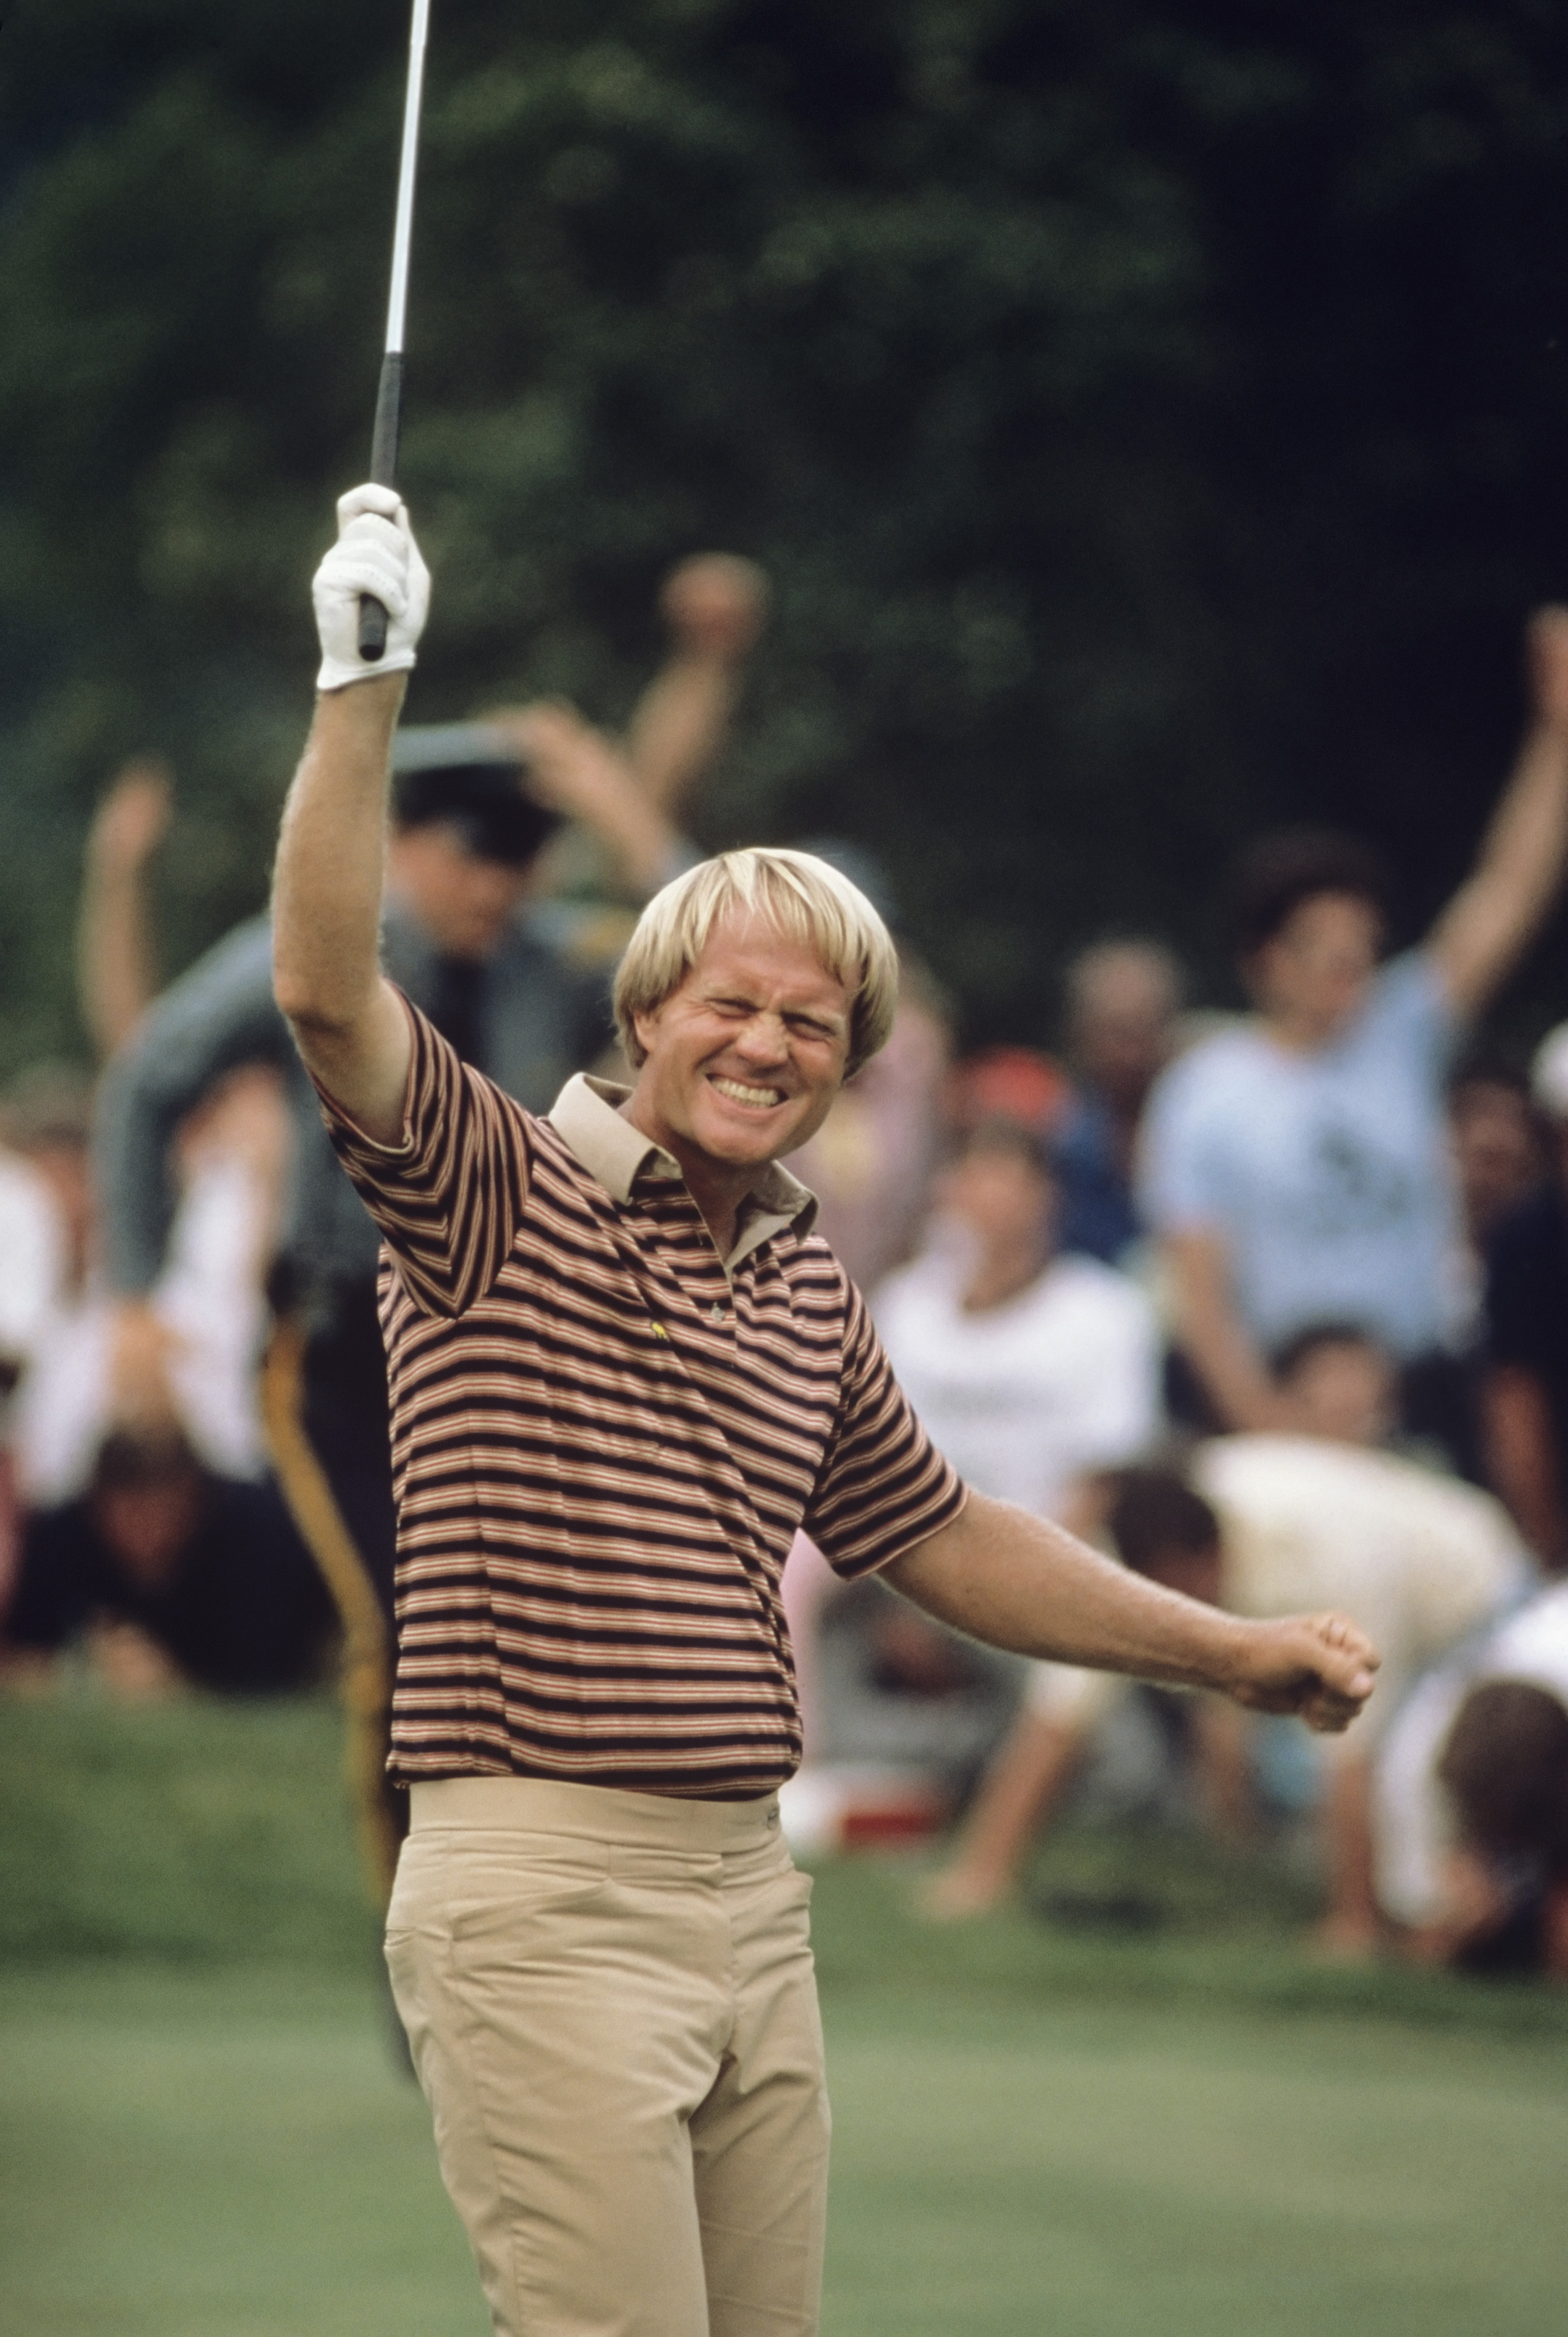 Jack Nicklaus celebrates after birdieing the 18th hole and winning the 1980 U.S. Open at Baltusrol.